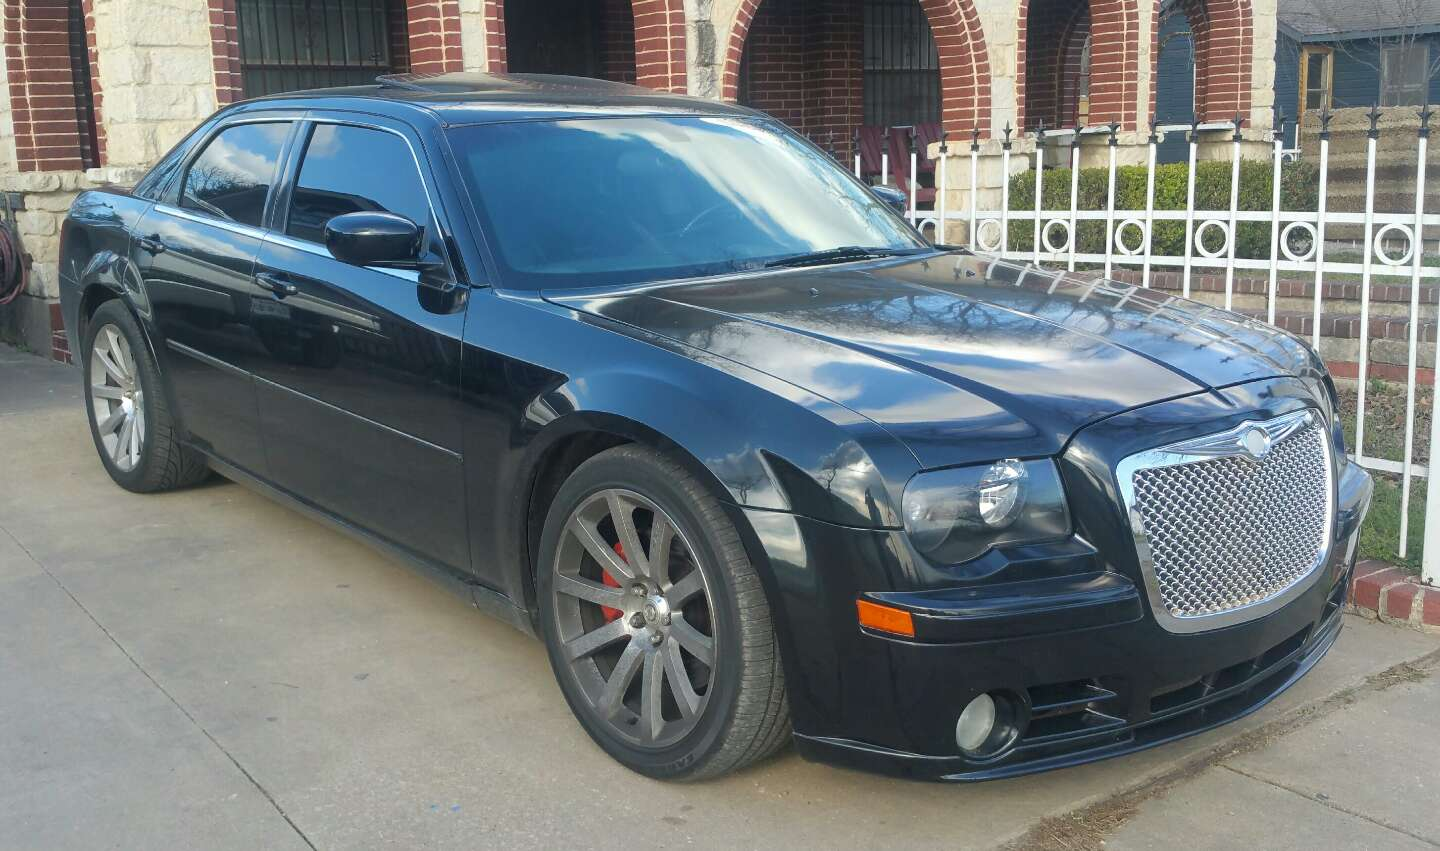 06 chrysler 300c srt8 for sale in dallas tx 5miles buy and sell. Black Bedroom Furniture Sets. Home Design Ideas